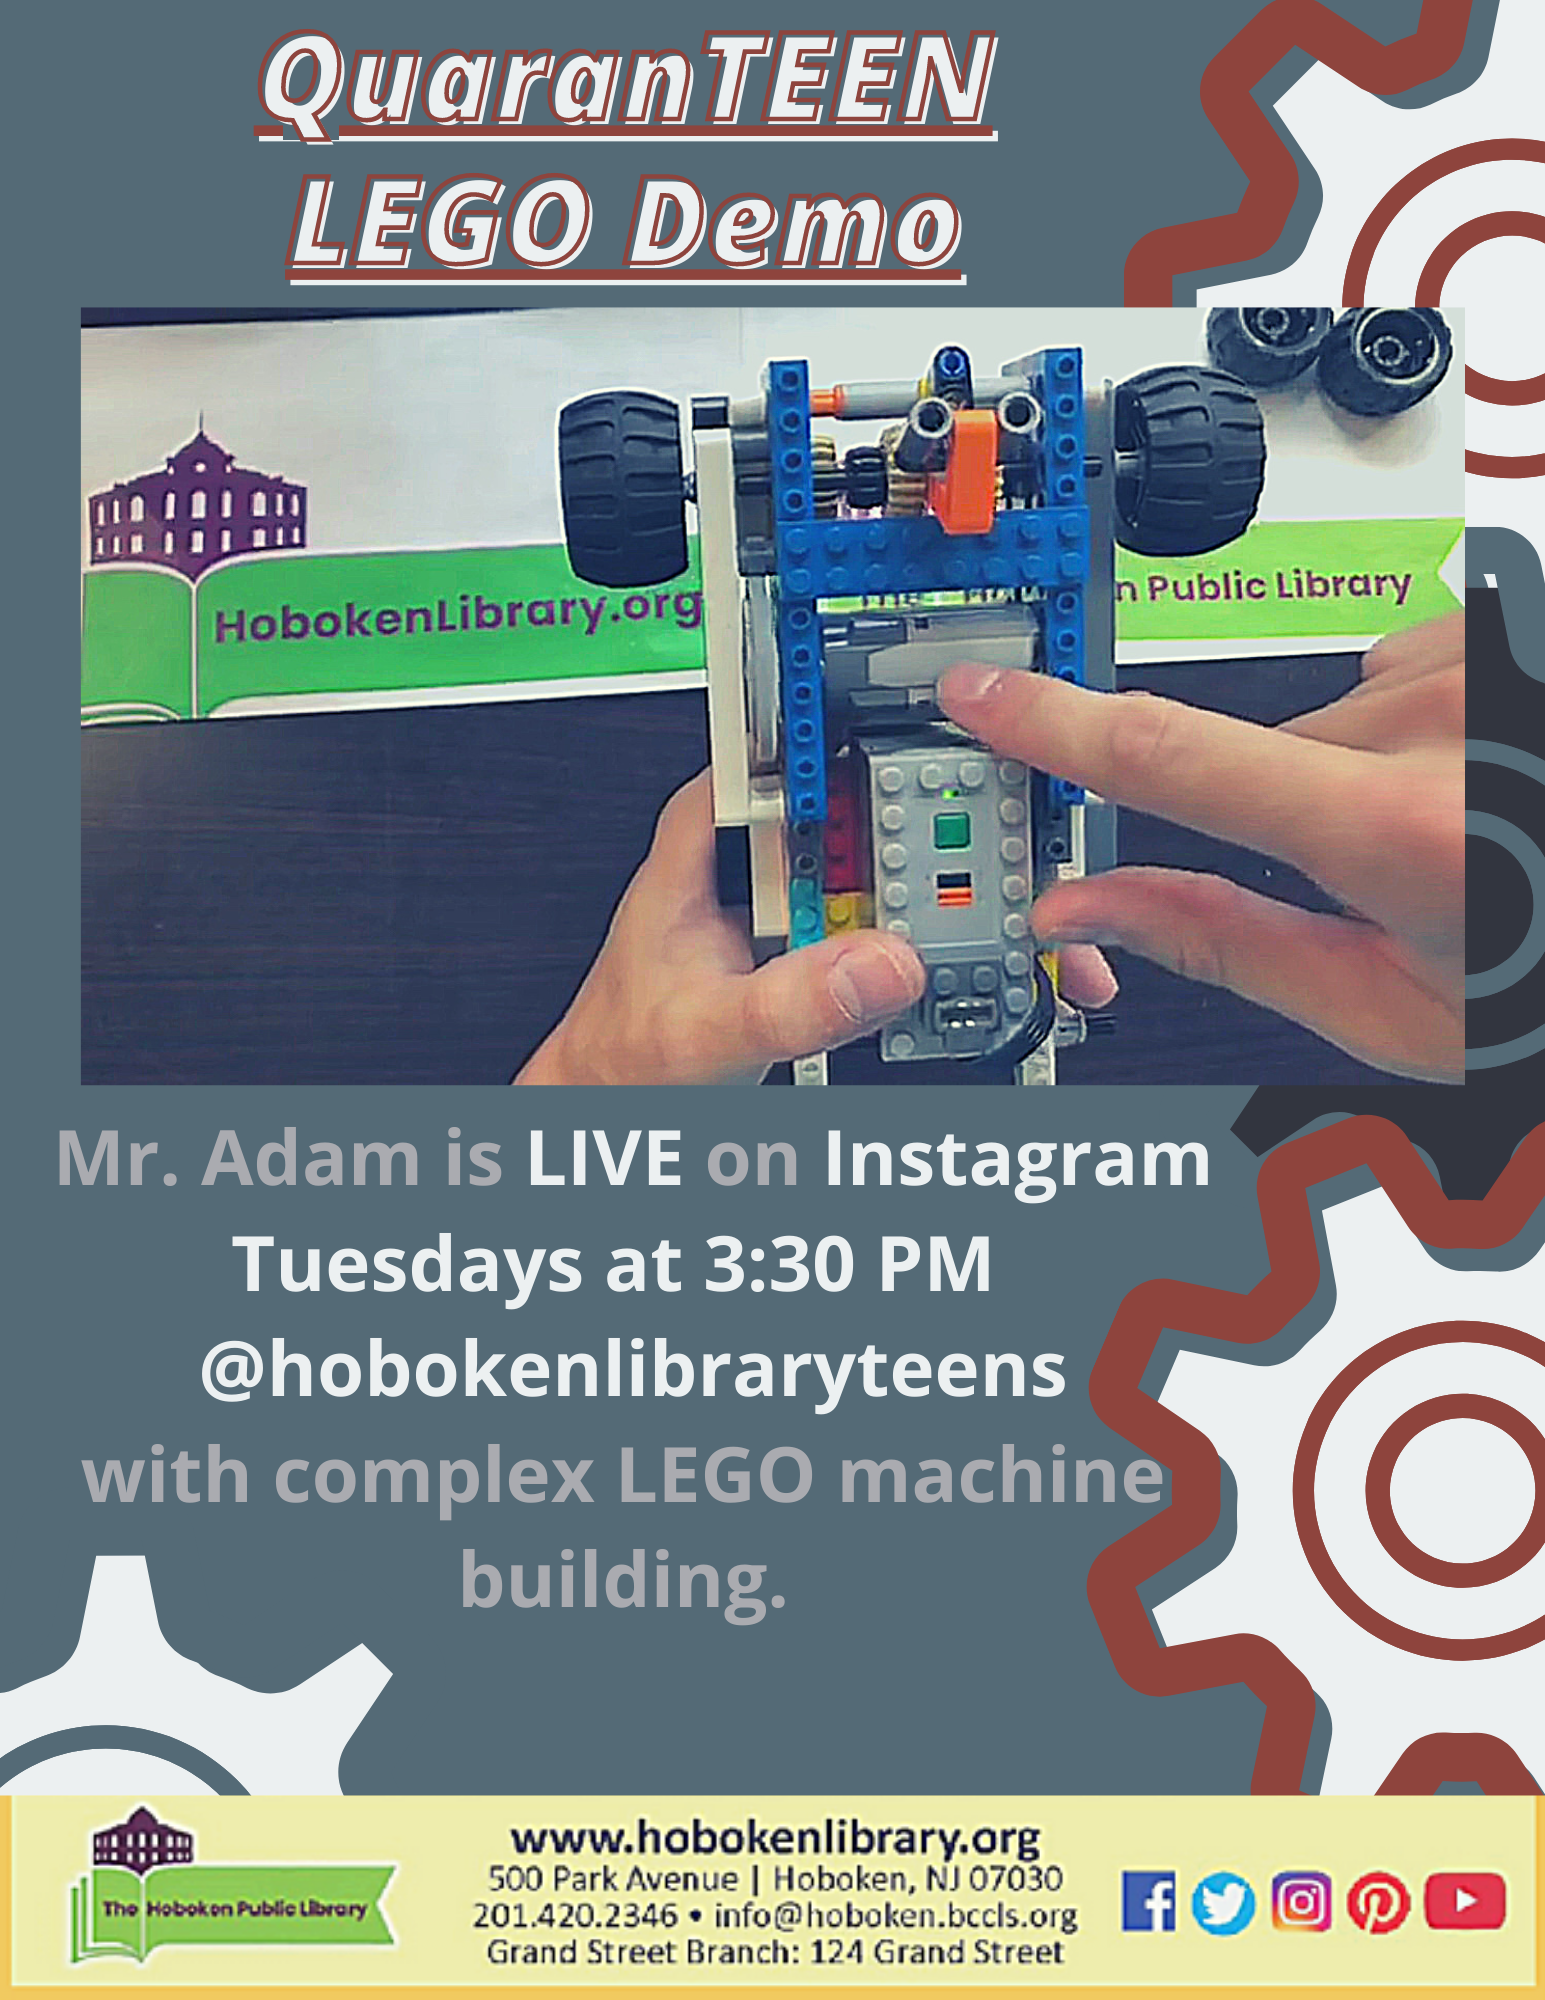 QuarenTEEN LEGO Demo: Live on Instagram